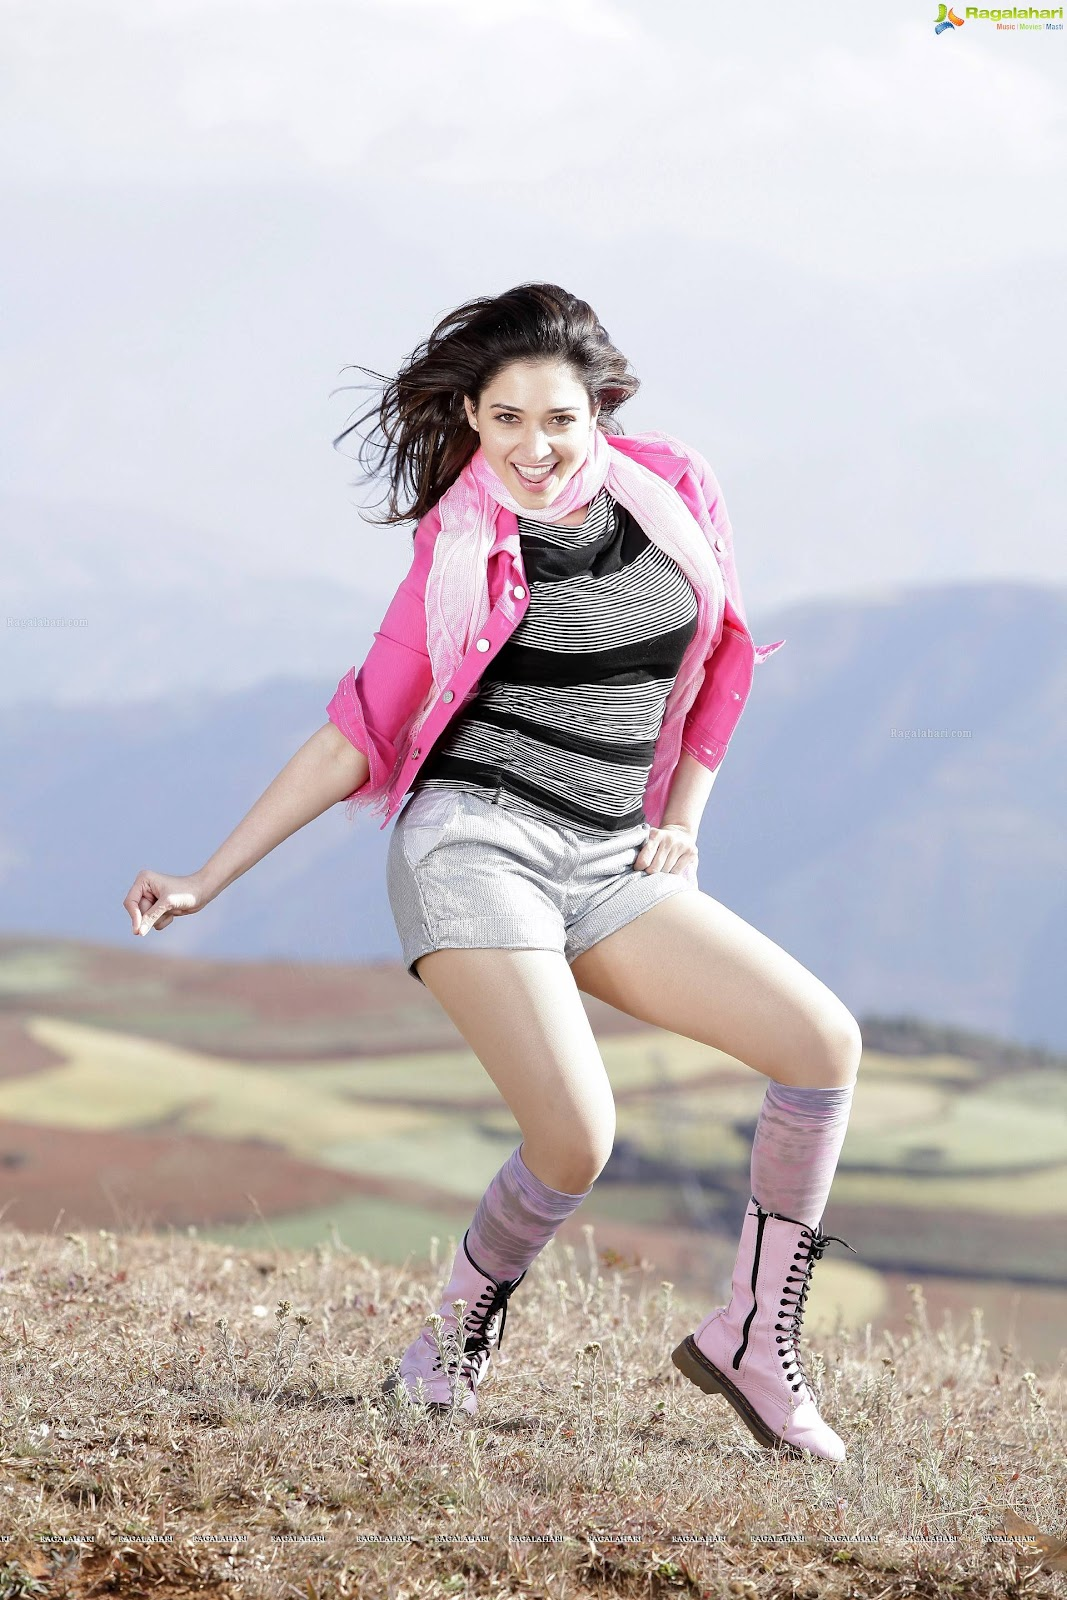 Tamanna in Shorts - Hot Thighs -  Tamanna Mini skirt HD Wallpapers